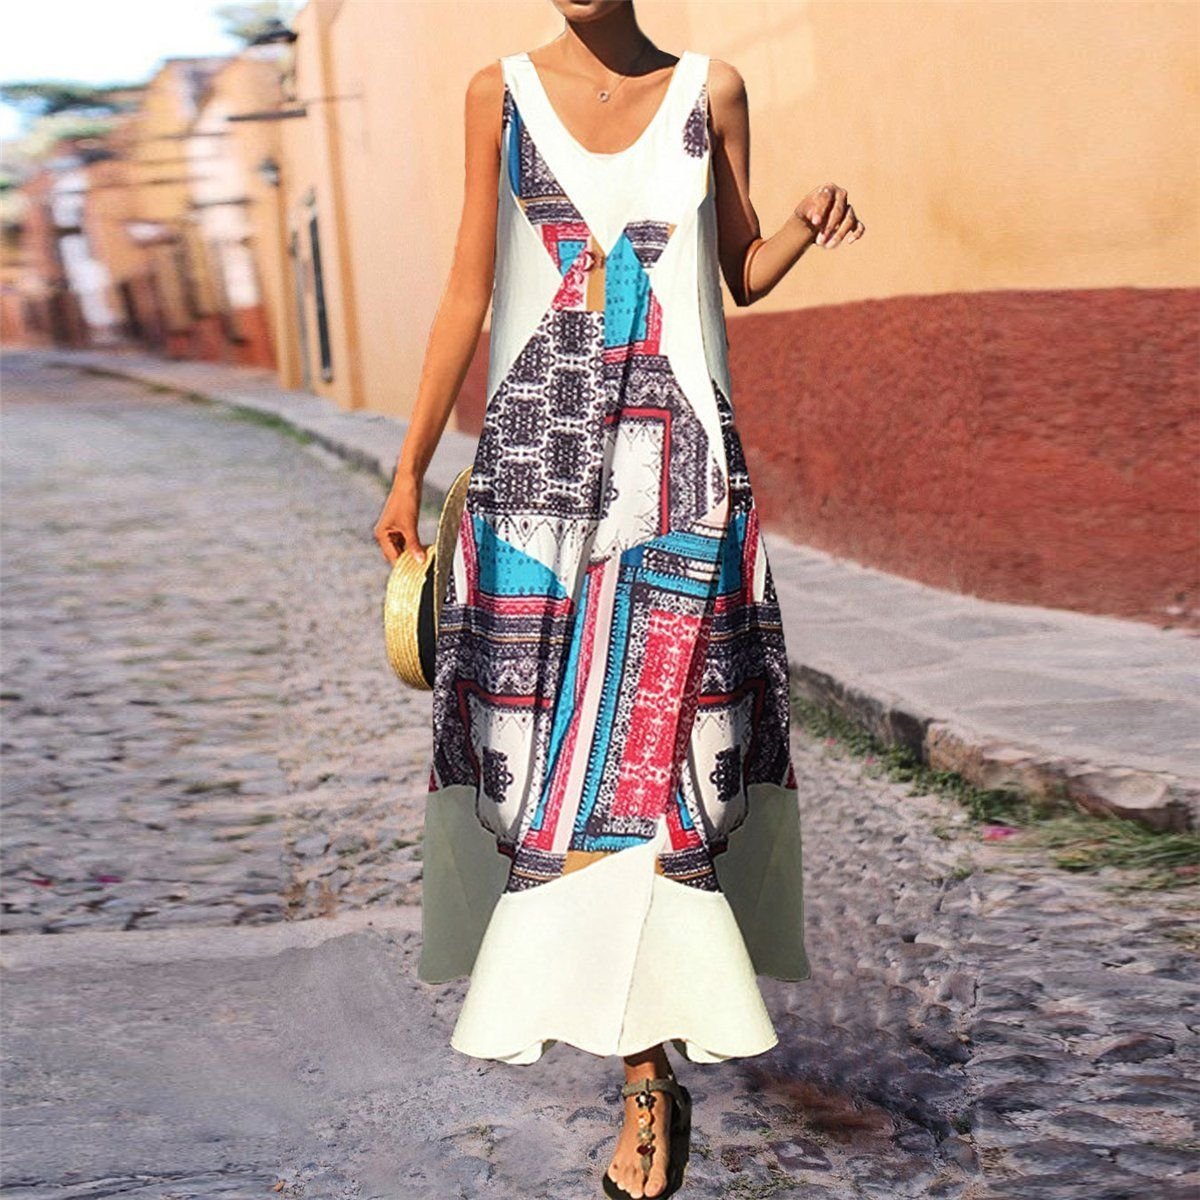 Summer Colorful Striped Loose Vacation Dress Ebuytide Vacation Dresses Vacation Dresses Beach V Summer Dresses For Women Boho Summer Dresses Vacation Dresses [ 1200 x 1200 Pixel ]